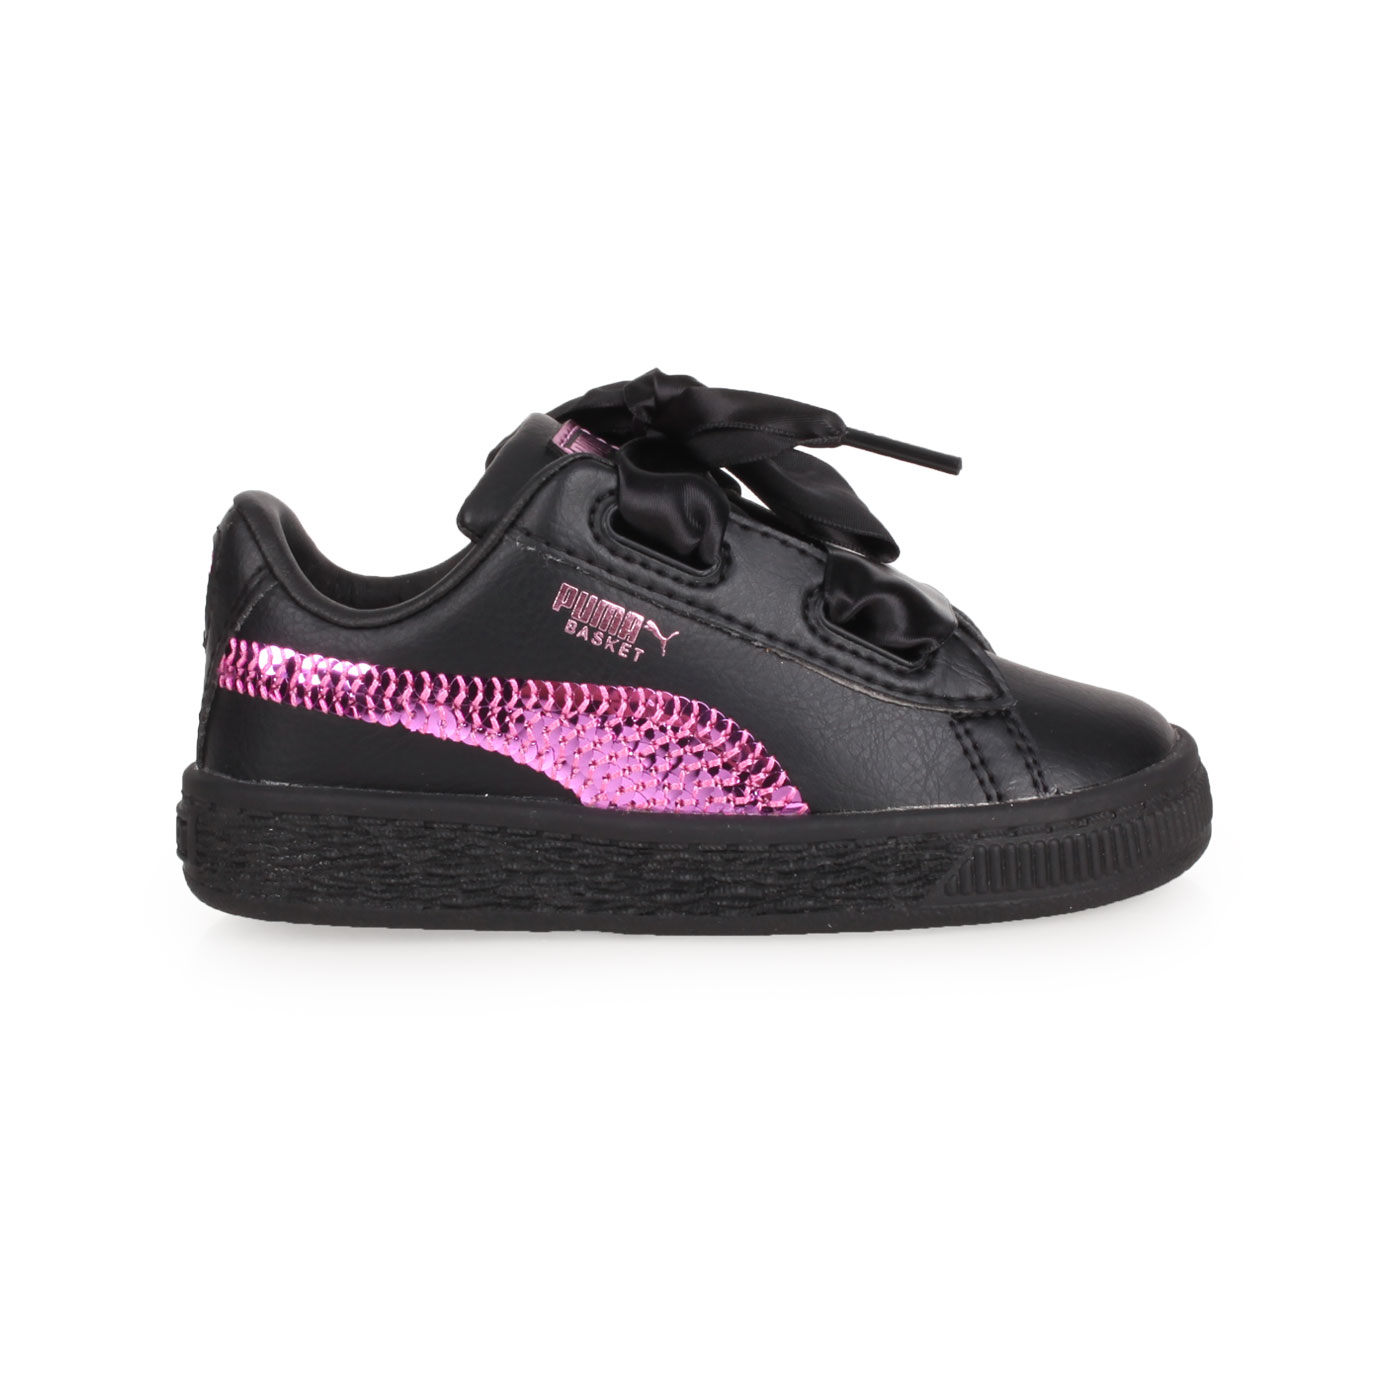 PUMA 兒童休閒運動鞋  @Basket Heart Bling Inf@36684901 - 黑紫